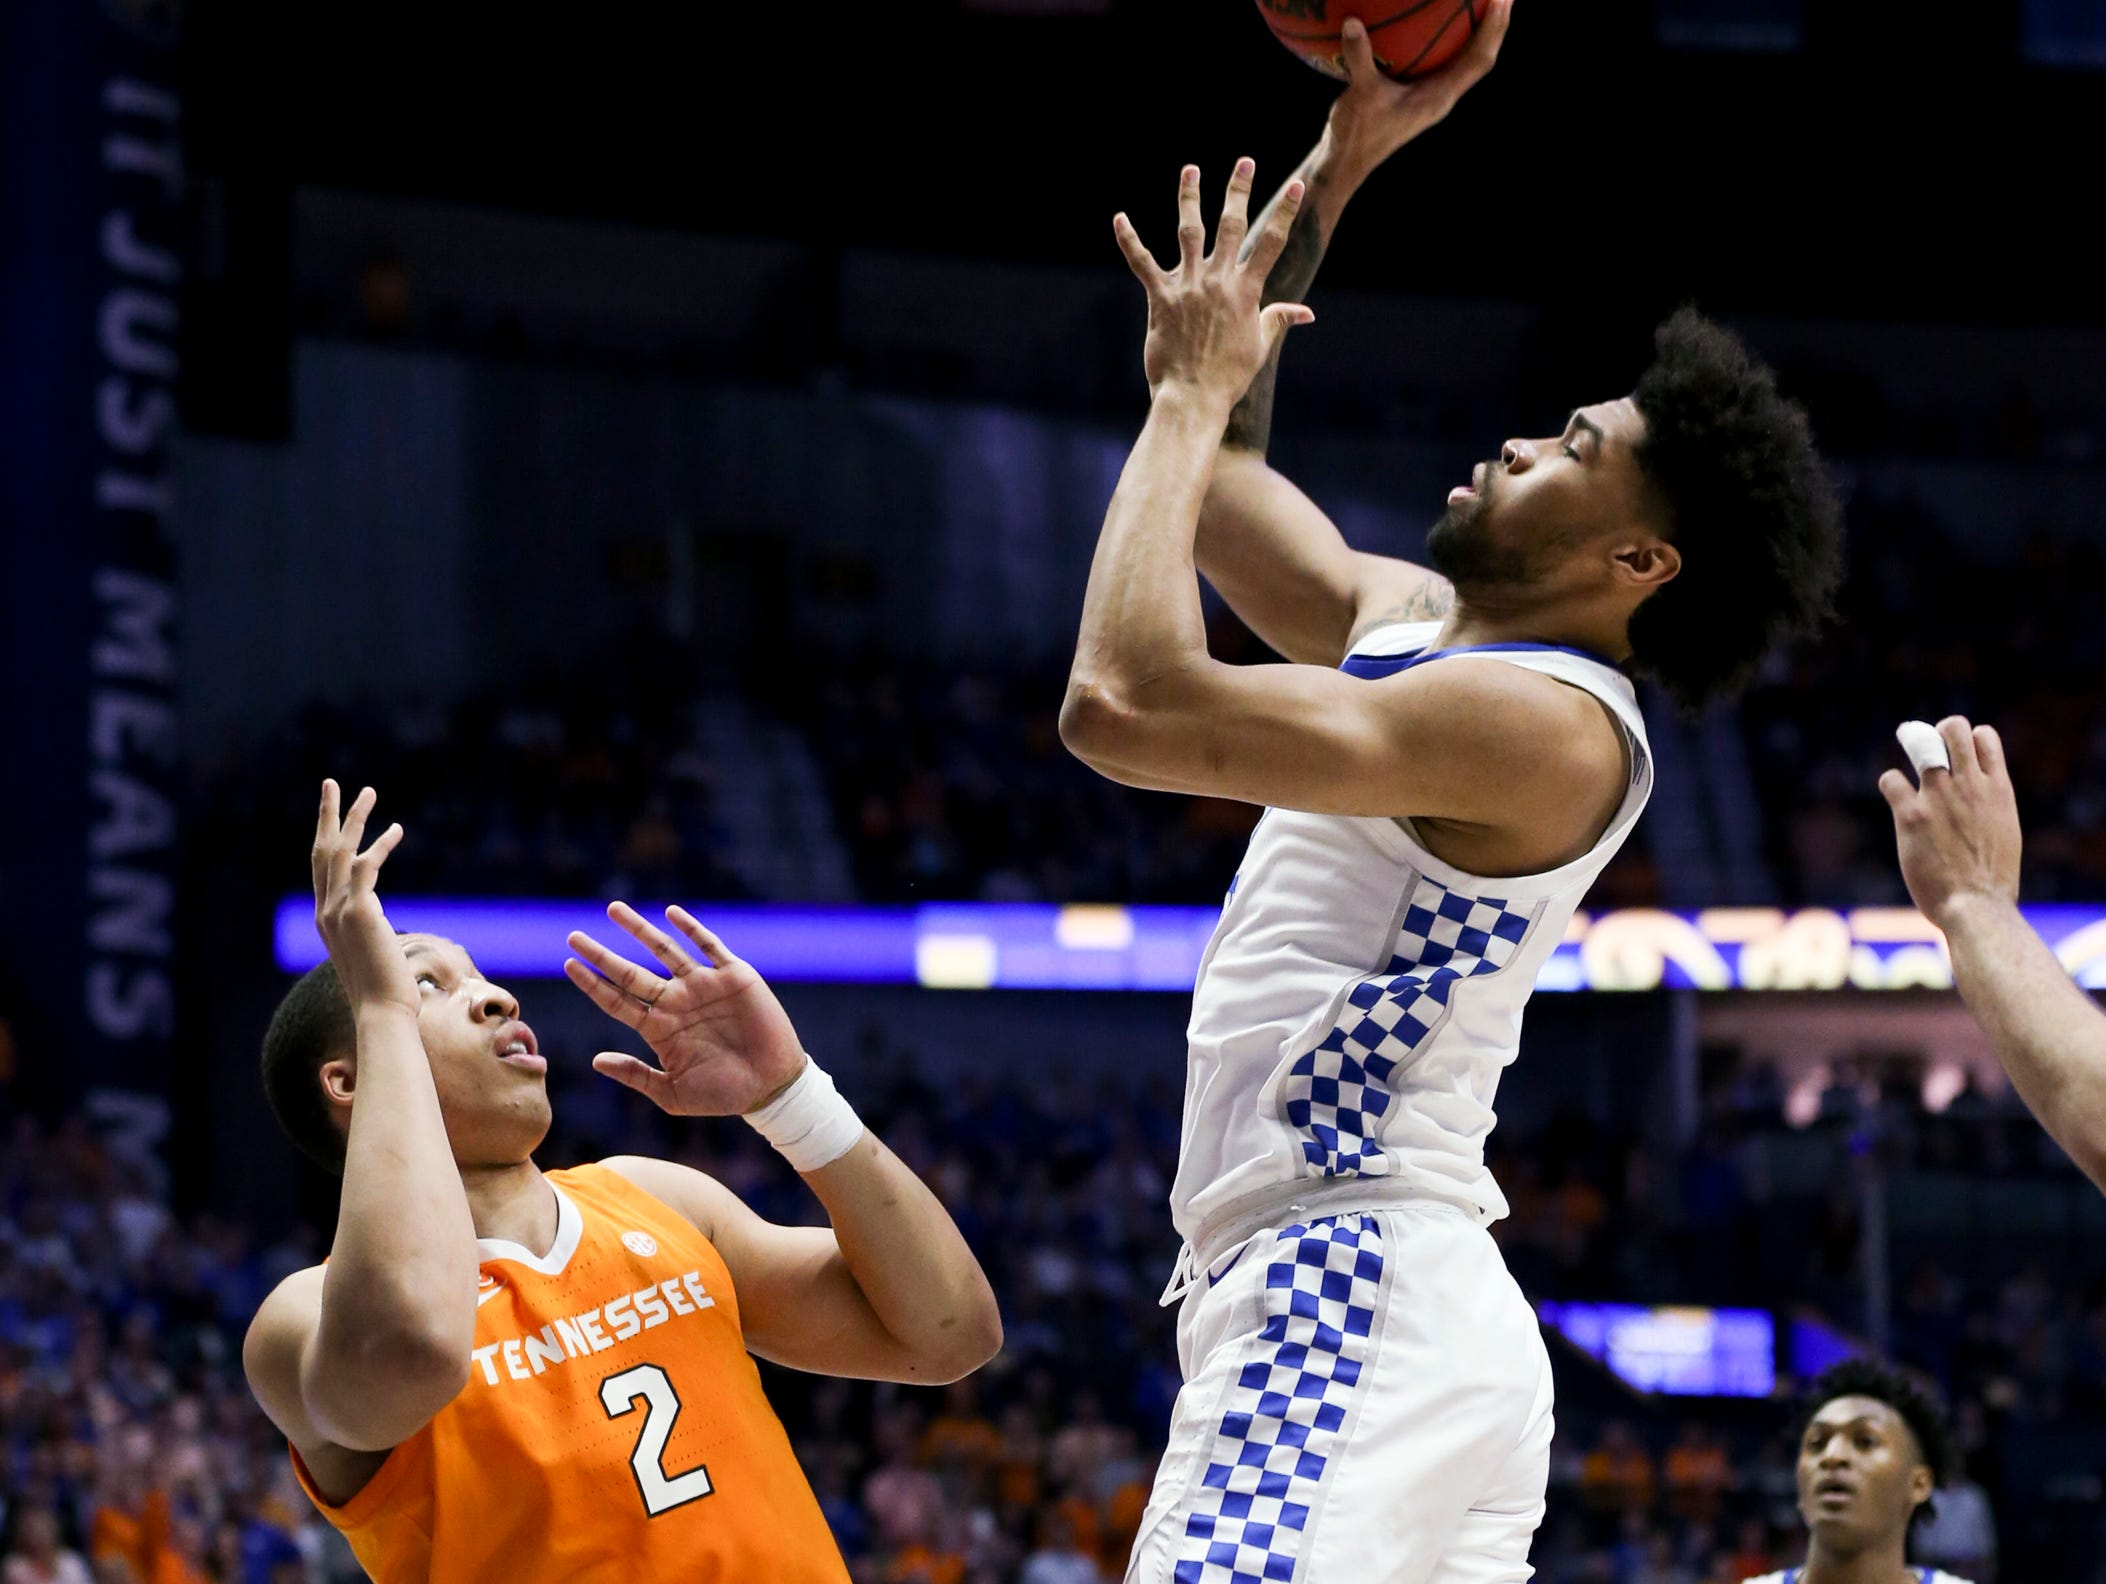 Kentucky forward Nick Richards (4) shoots past Tennessee forward Grant Williams (2) during the first half of the SEC Men's Basketball Tournament semifinal game at Bridgestone Arena in Nashville, Tenn., Saturday, March 16, 2019.